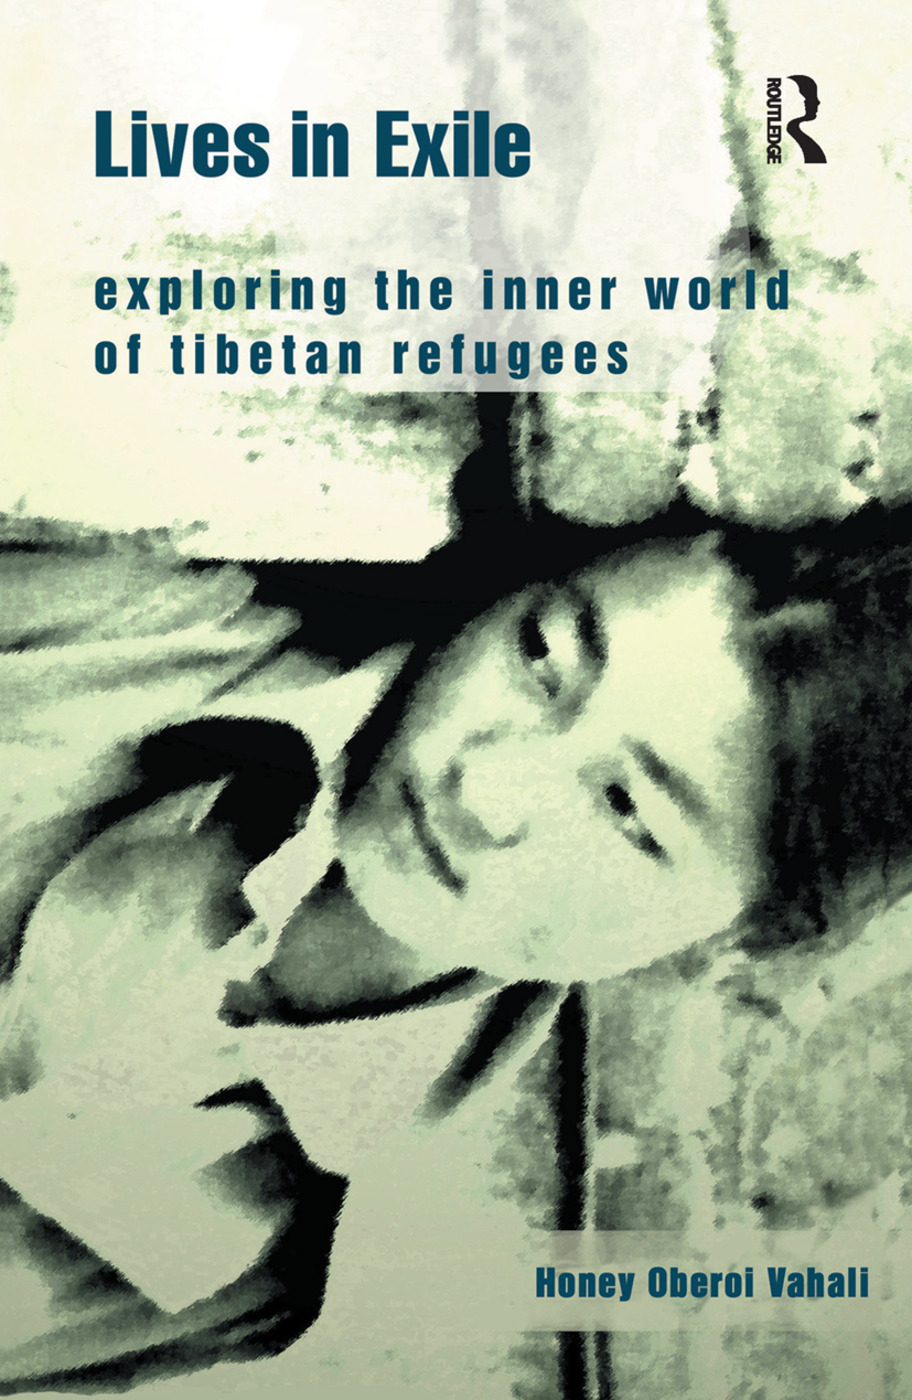 Lives in Exile: Exploring the Inner World of Tibetan Refugees book cover